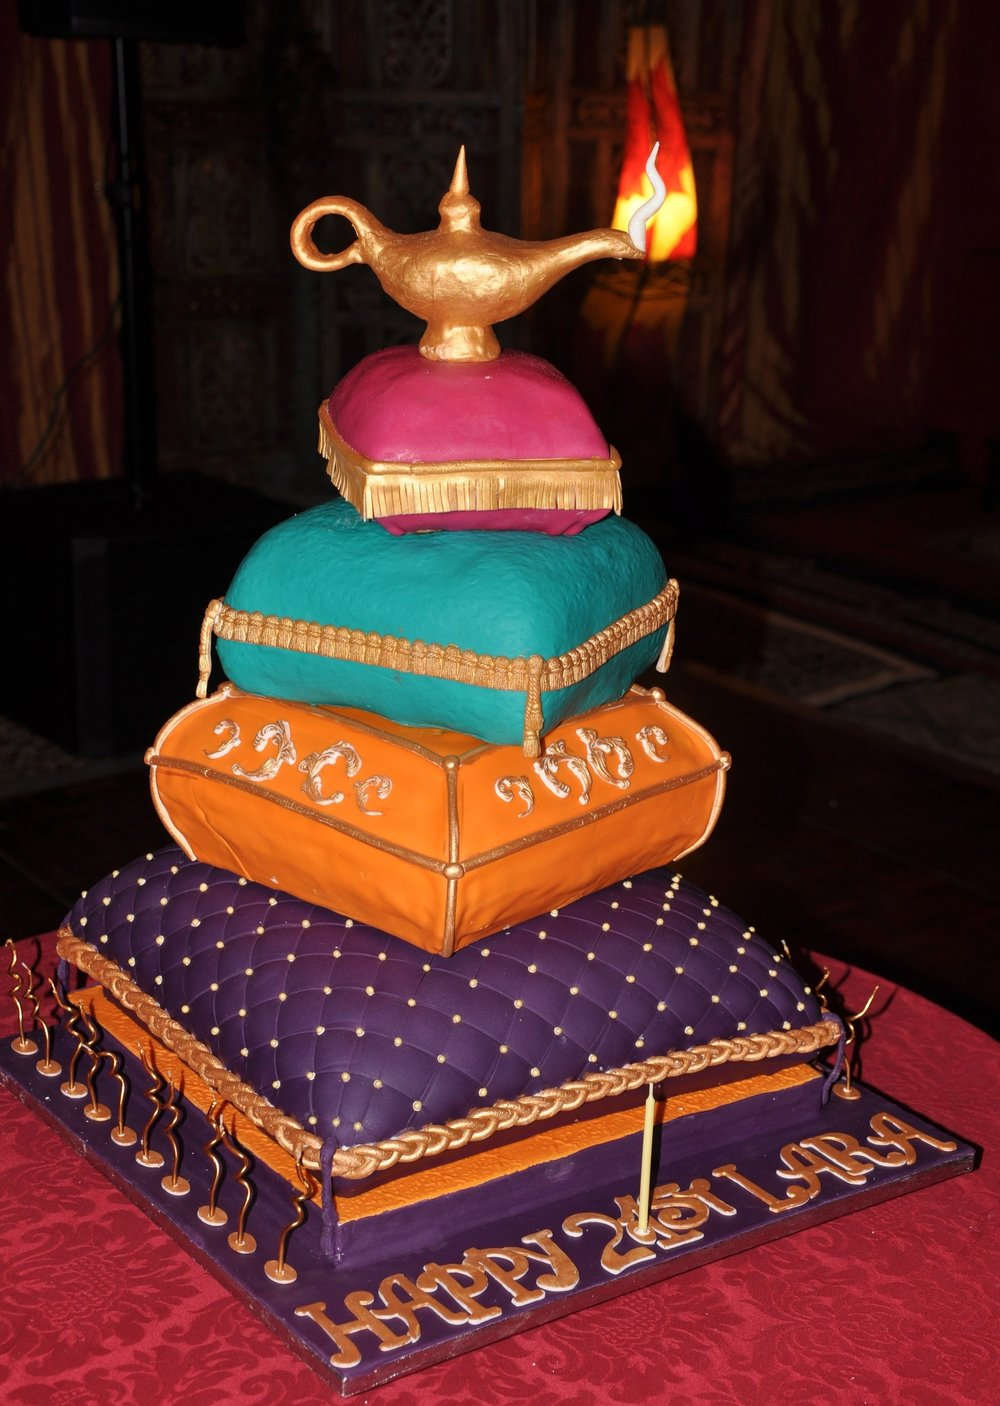 Mystic East cake - Made for Lara's 21st to fit in with her Arabian Nights theme this 4 tier pile of cushions was perfect.